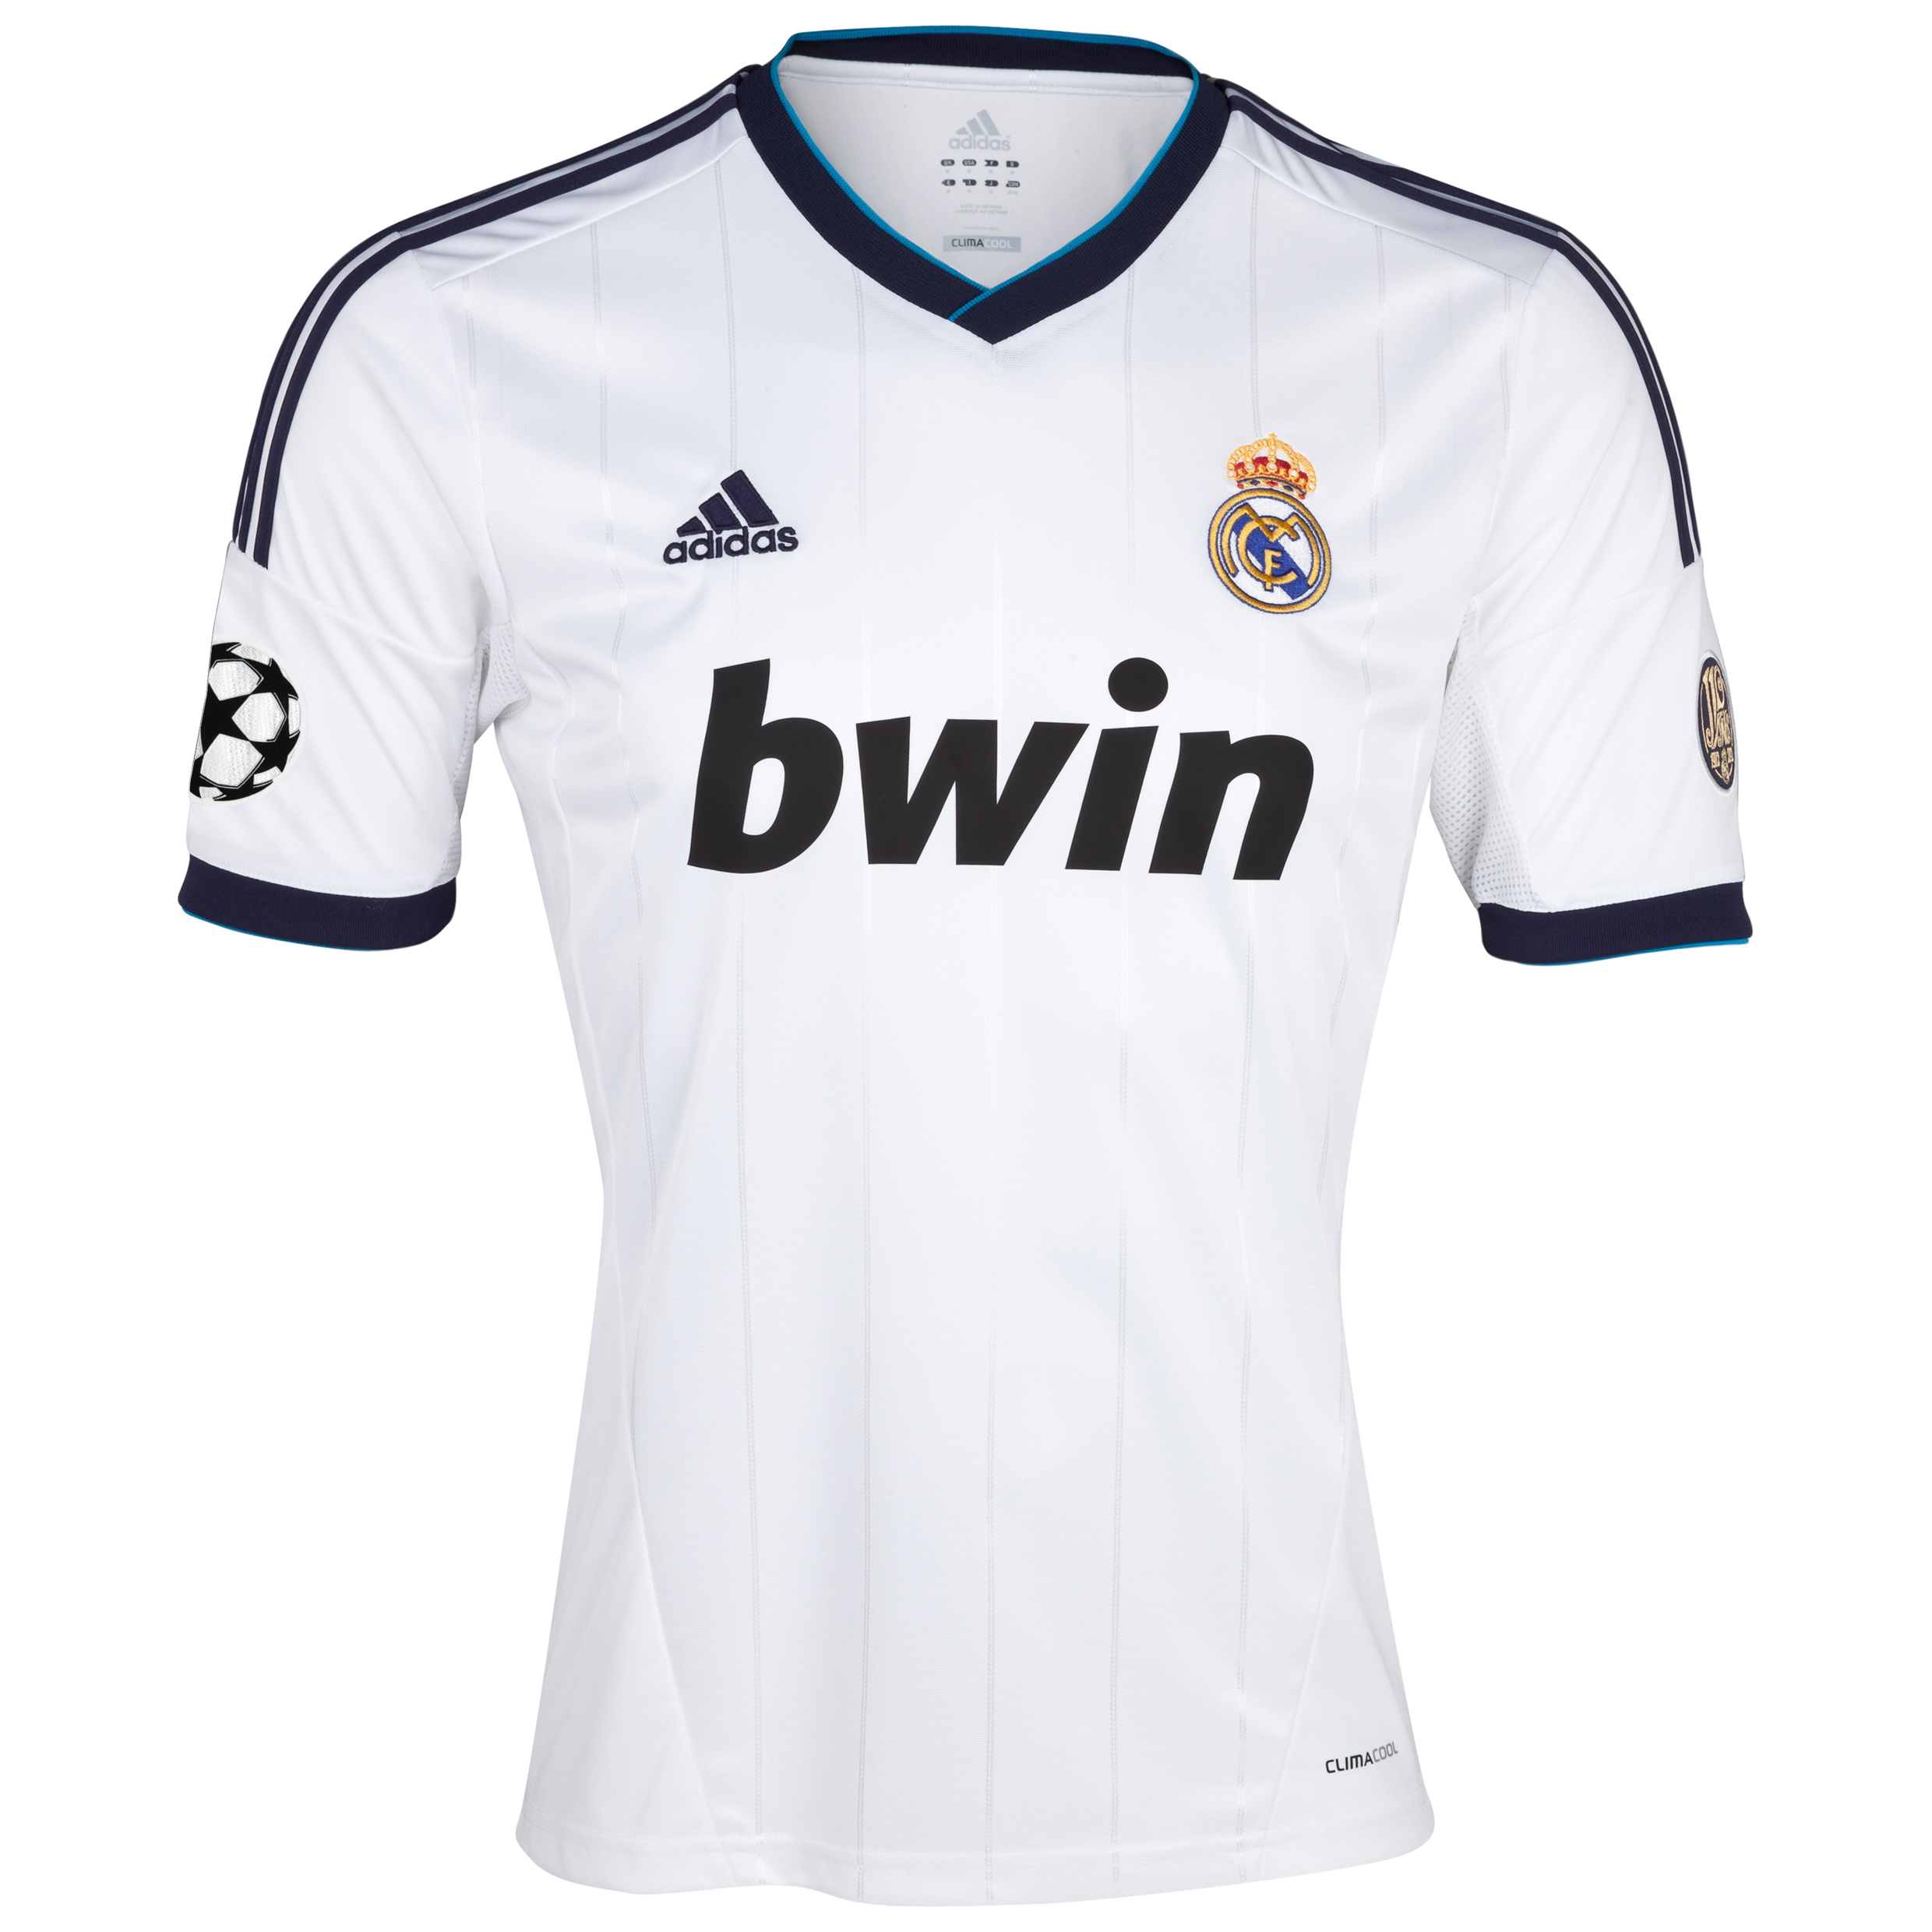 Buy Real Madrid UEFA Champions League Home Kit 2012/13